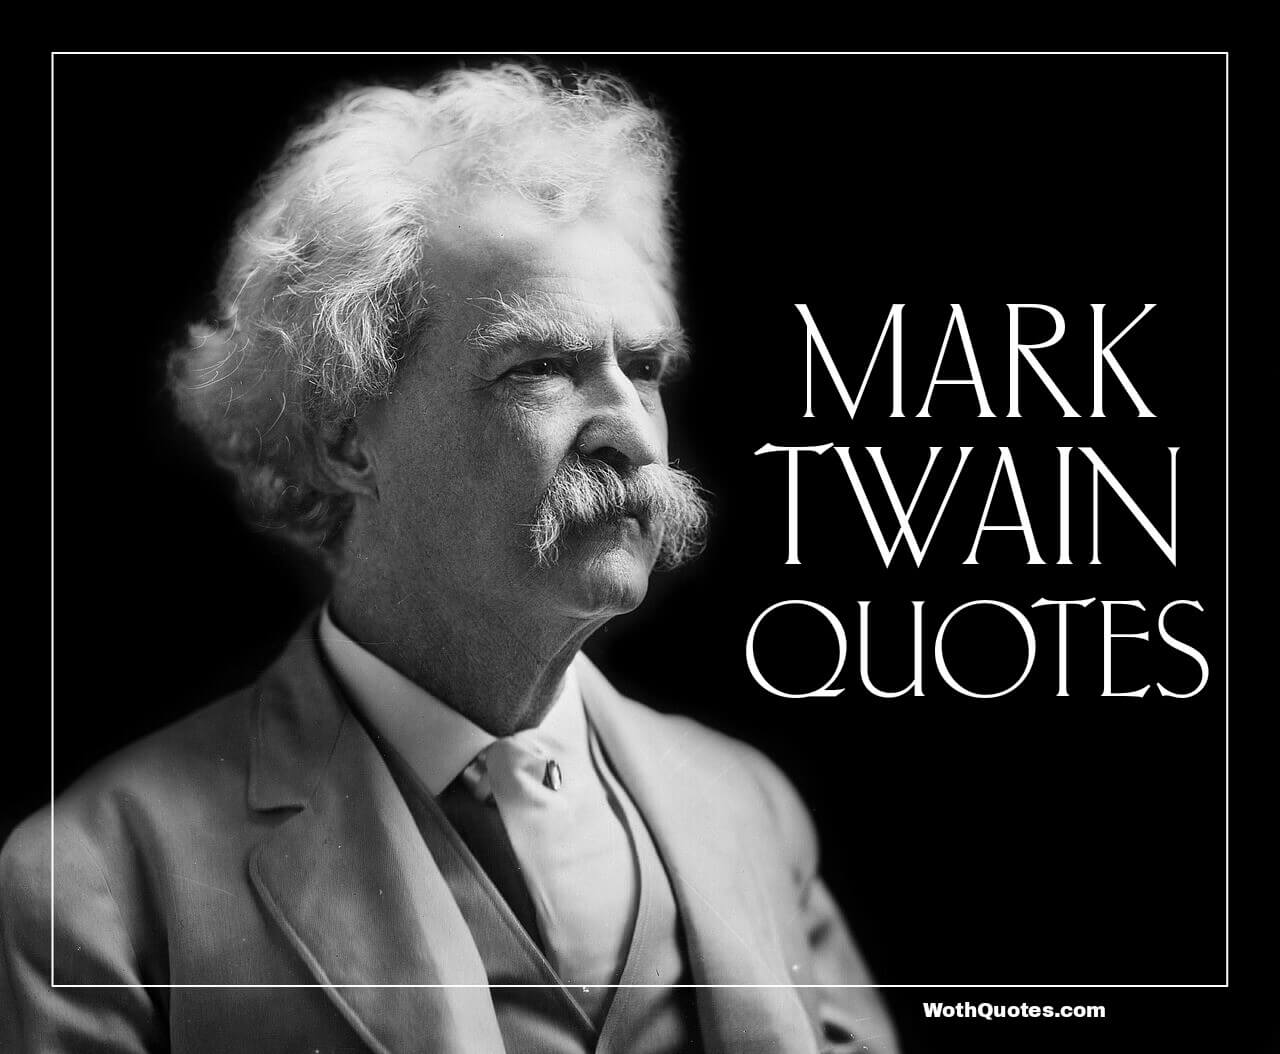 Mark Twain Quotes 30 Mark Twain Quotes  Wothquotes  Wothquotes Collection